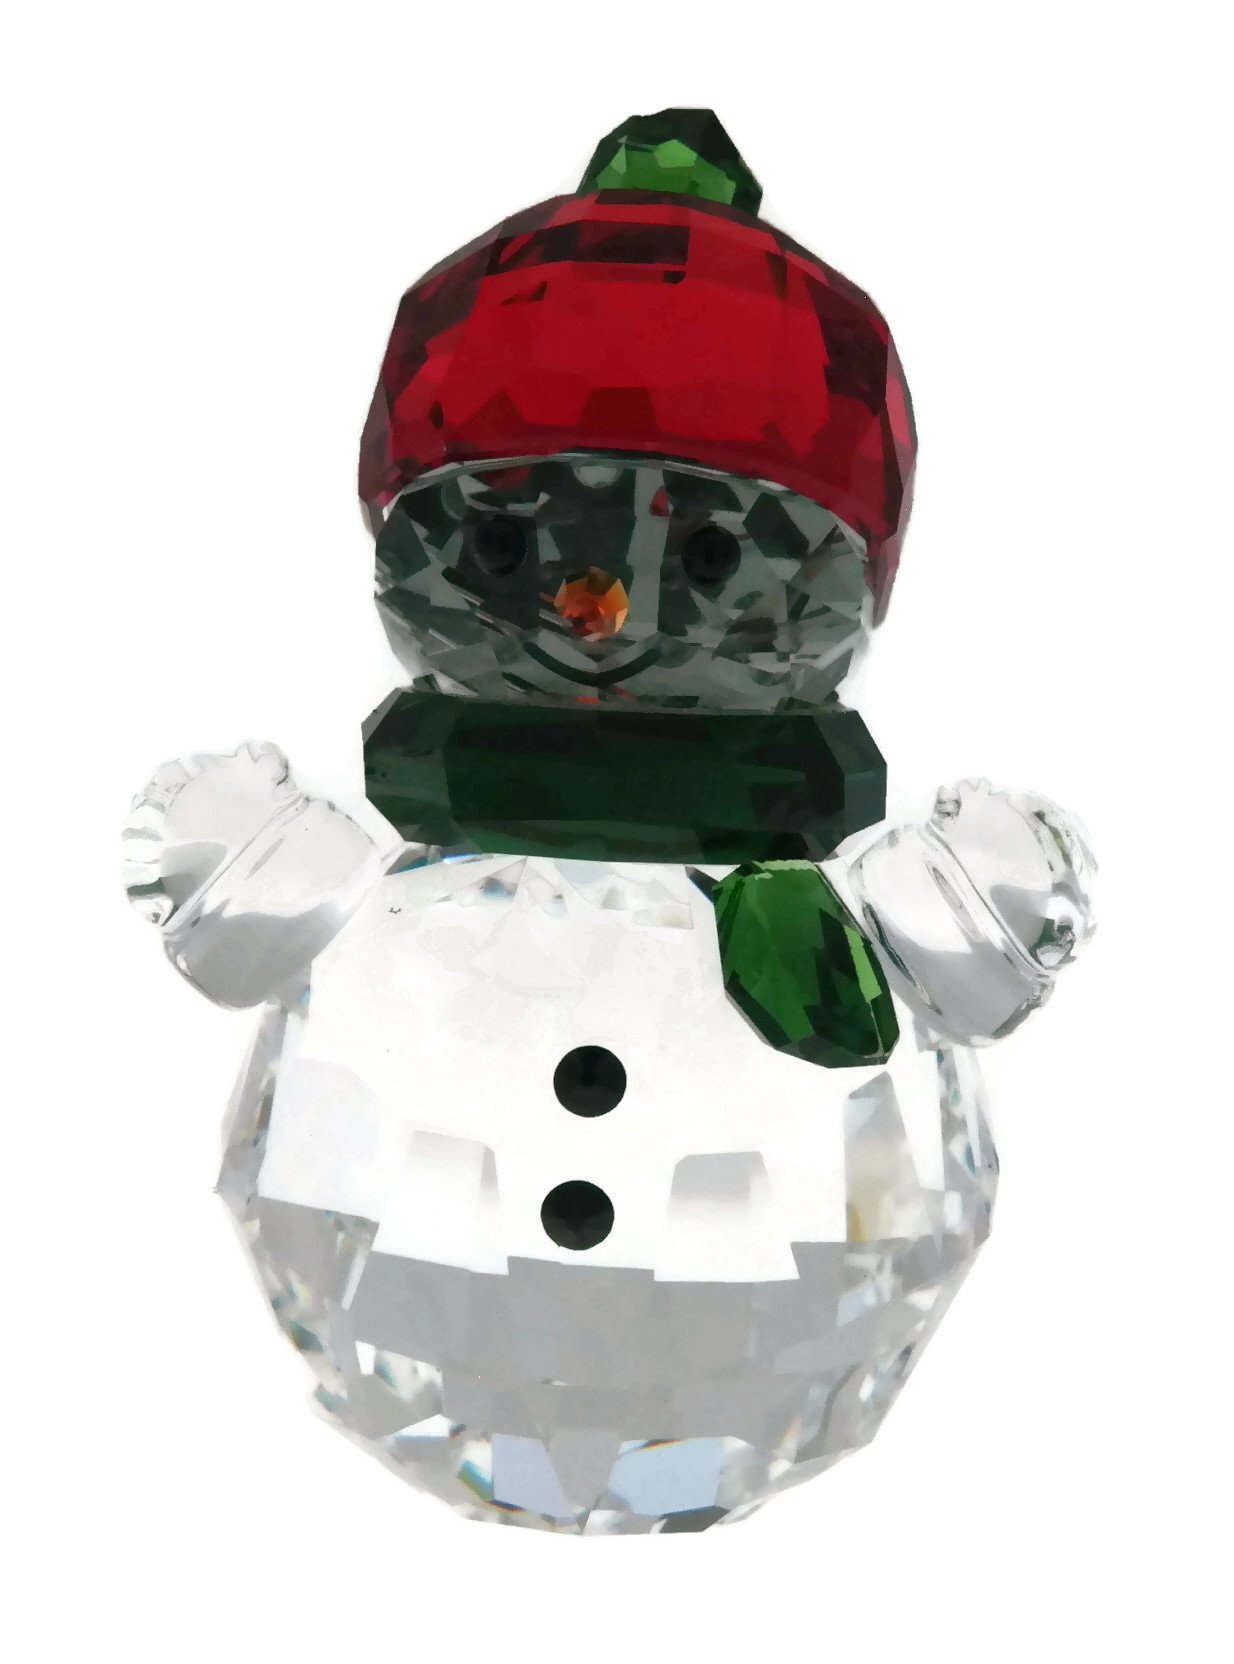 Swarovski Crystal Snowman with Red Hat